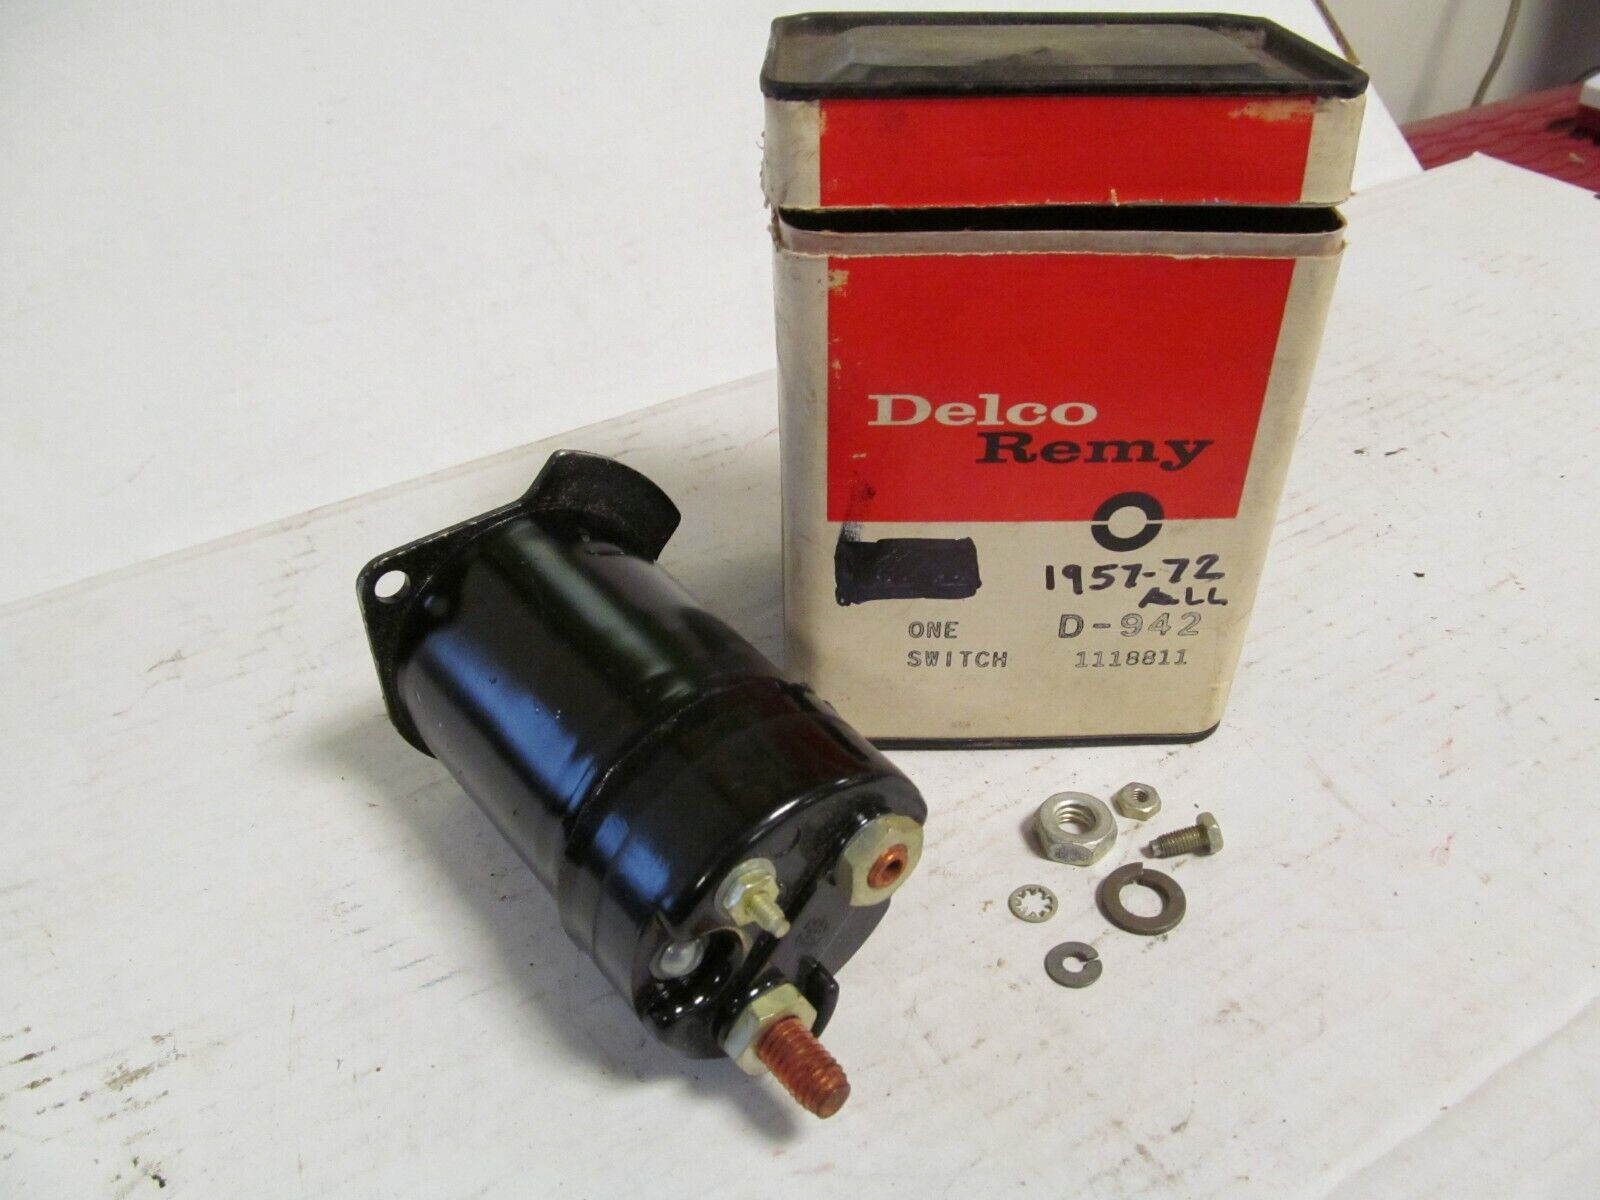 1957-1972 Oldsmobile NOS GM Delco-Remy Starter Solonoid Switch # 1118811 D-942